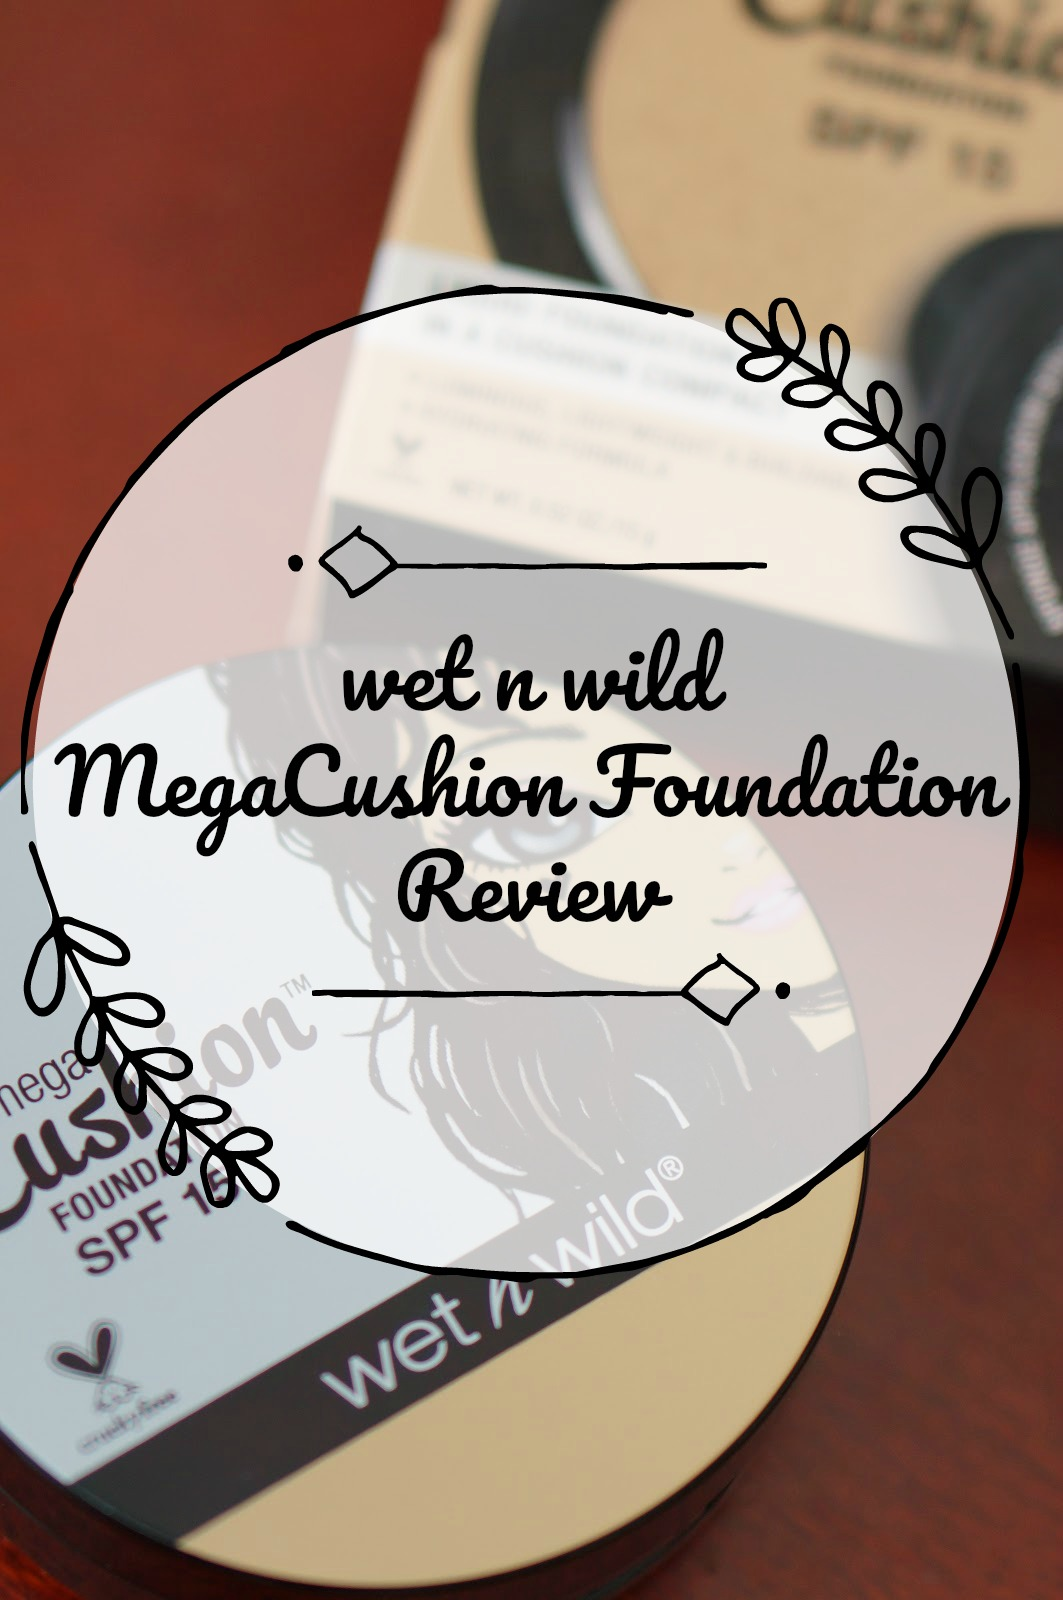 Popular North Carolina style blogger Rebecca Lately shares her review of the wet n wild MegaCushion Foundation.  Click here to see how it wore on her combination/oil skin!